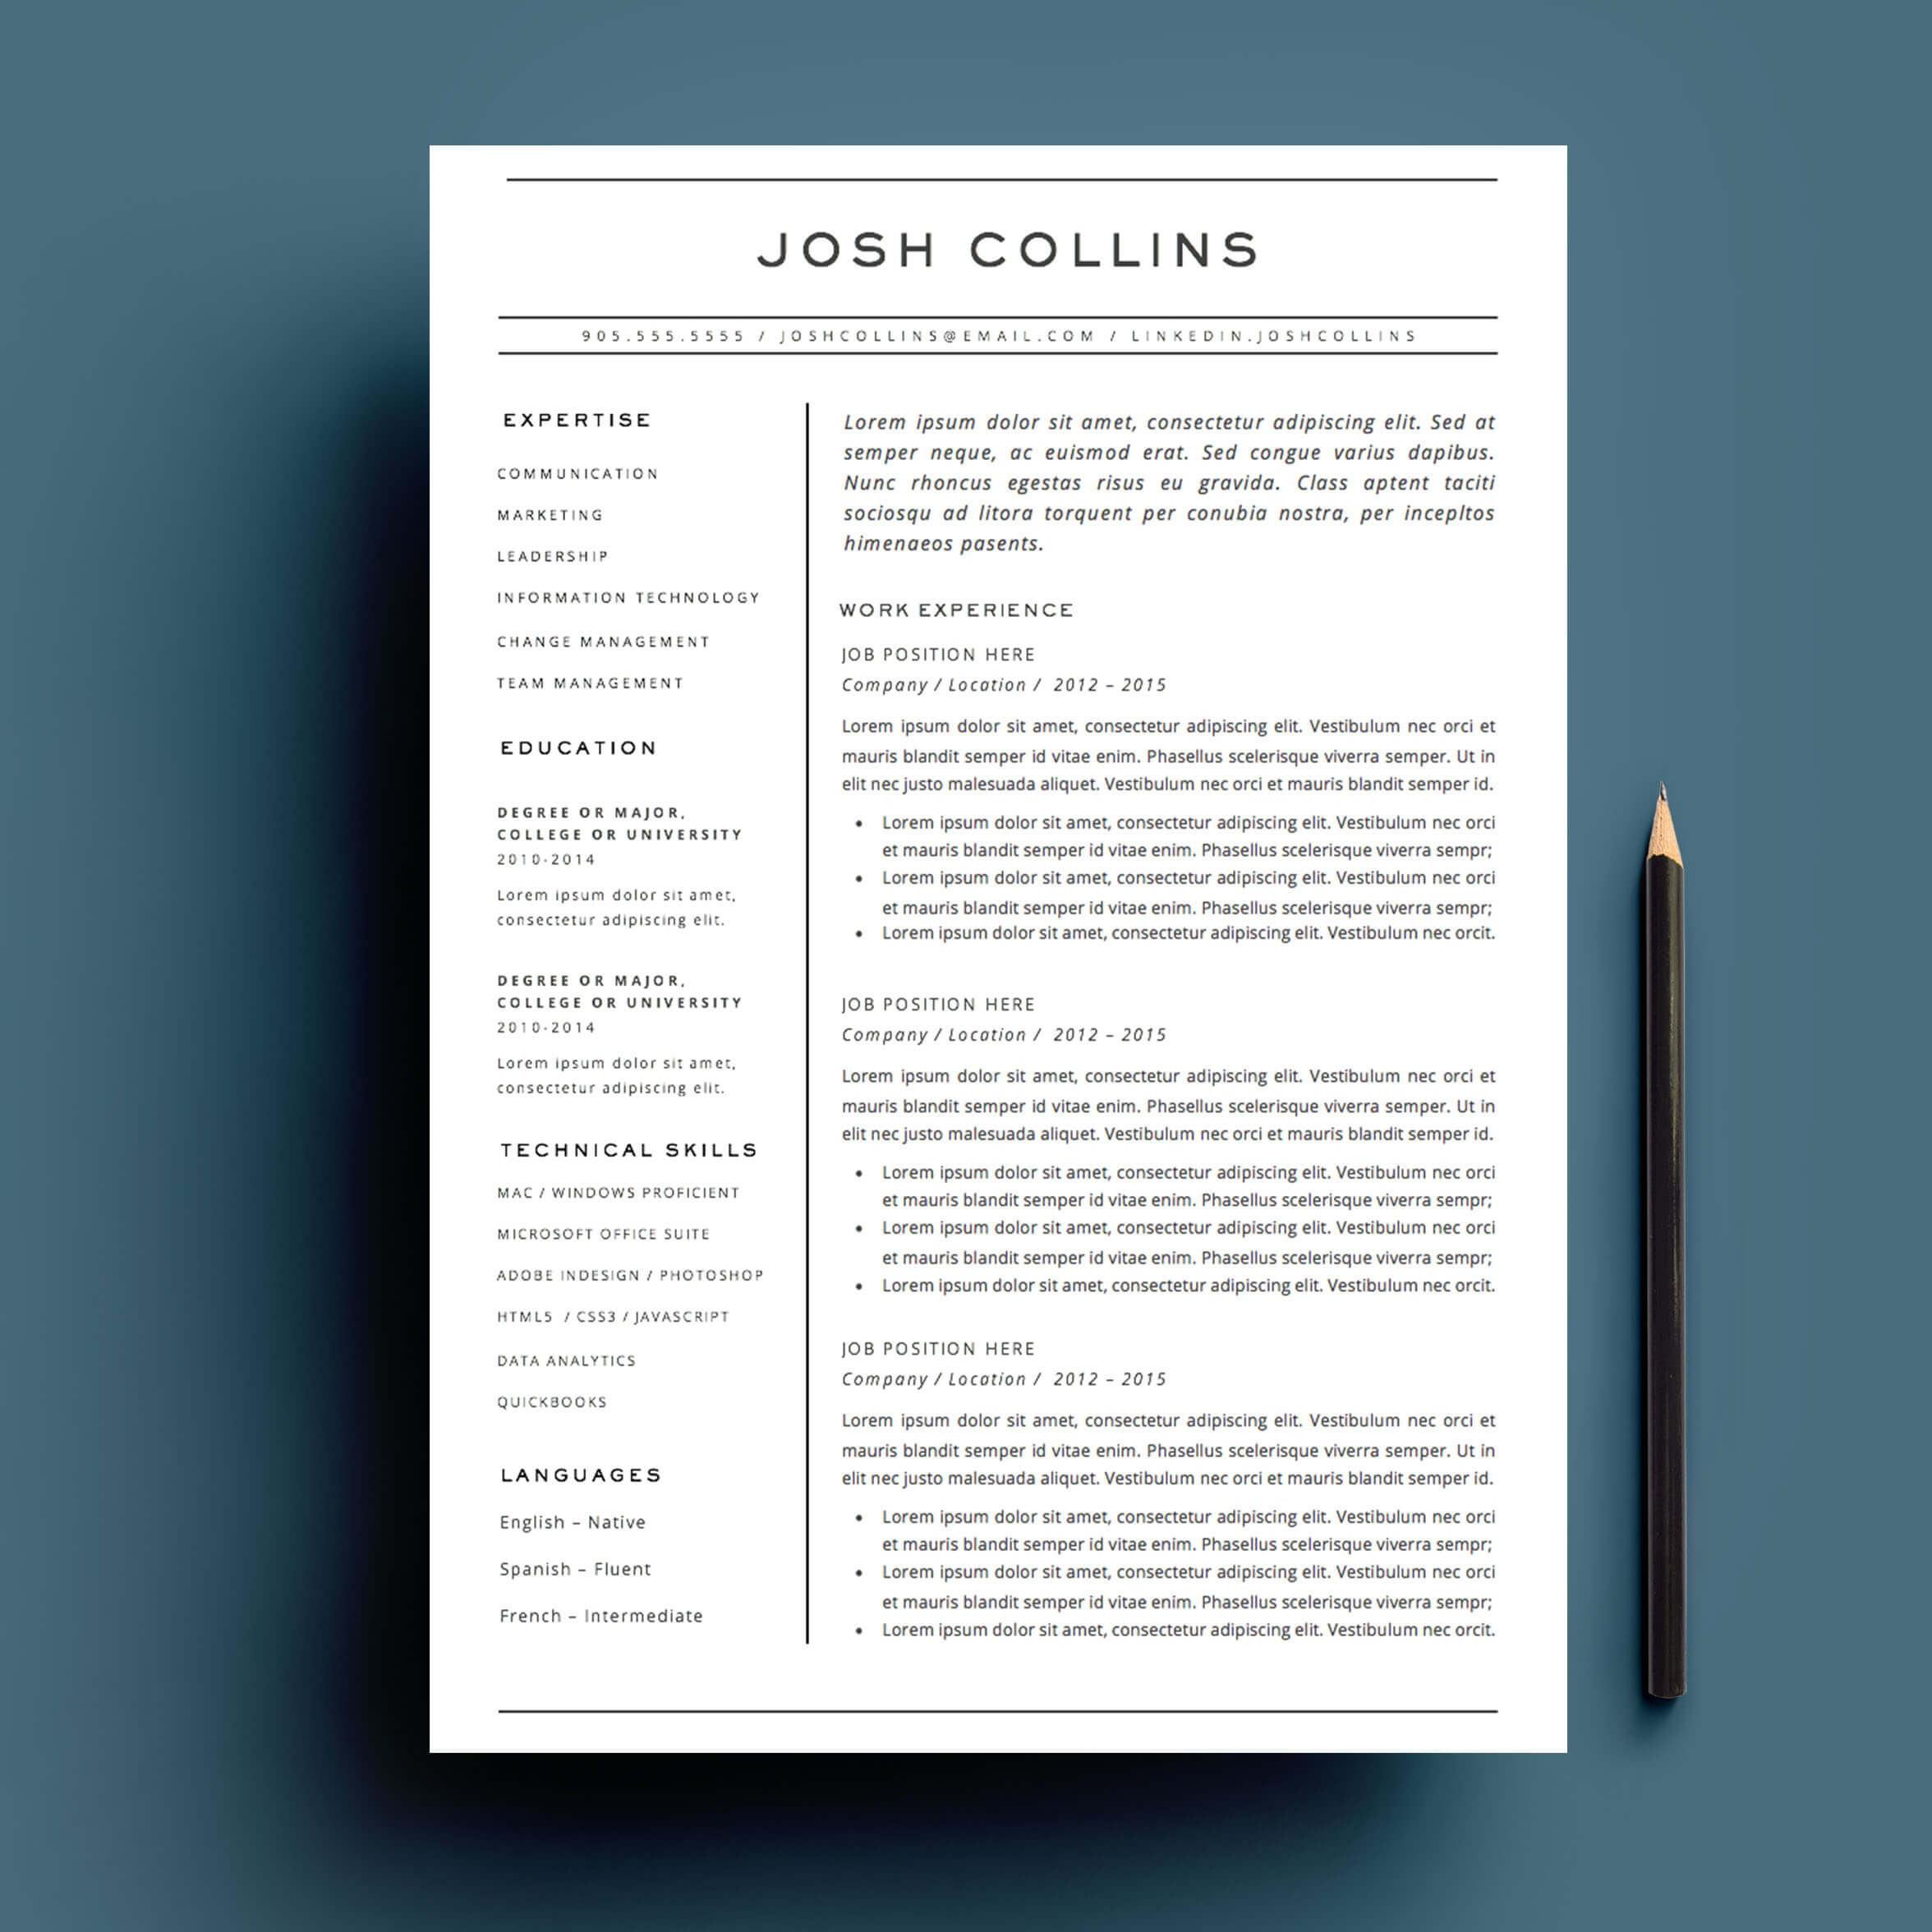 4 page resume and cover letter template for microsoft word the collins resume